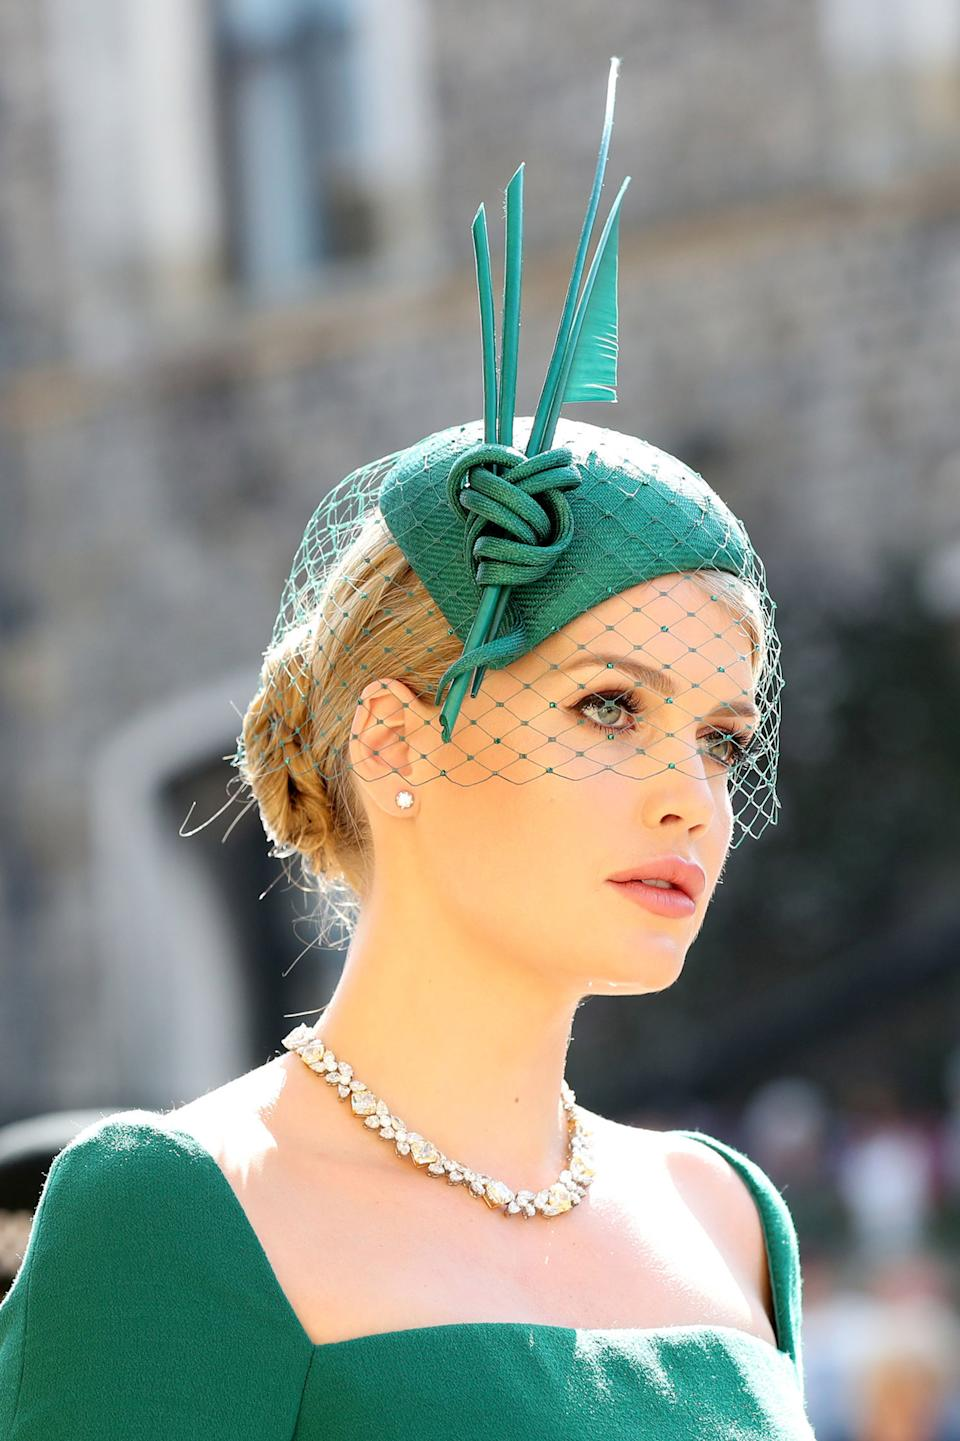 WINDSOR, UNITED KINGDOM - MAY 19:  Lady Kitty Spencer  arrives at St George's Chapel at Windsor Castle before the wedding of Prince Harry to Meghan Markle on May 19, 2018 in Windsor, England. (Photo by Gareth Fuller - WPA Pool/Getty Images)